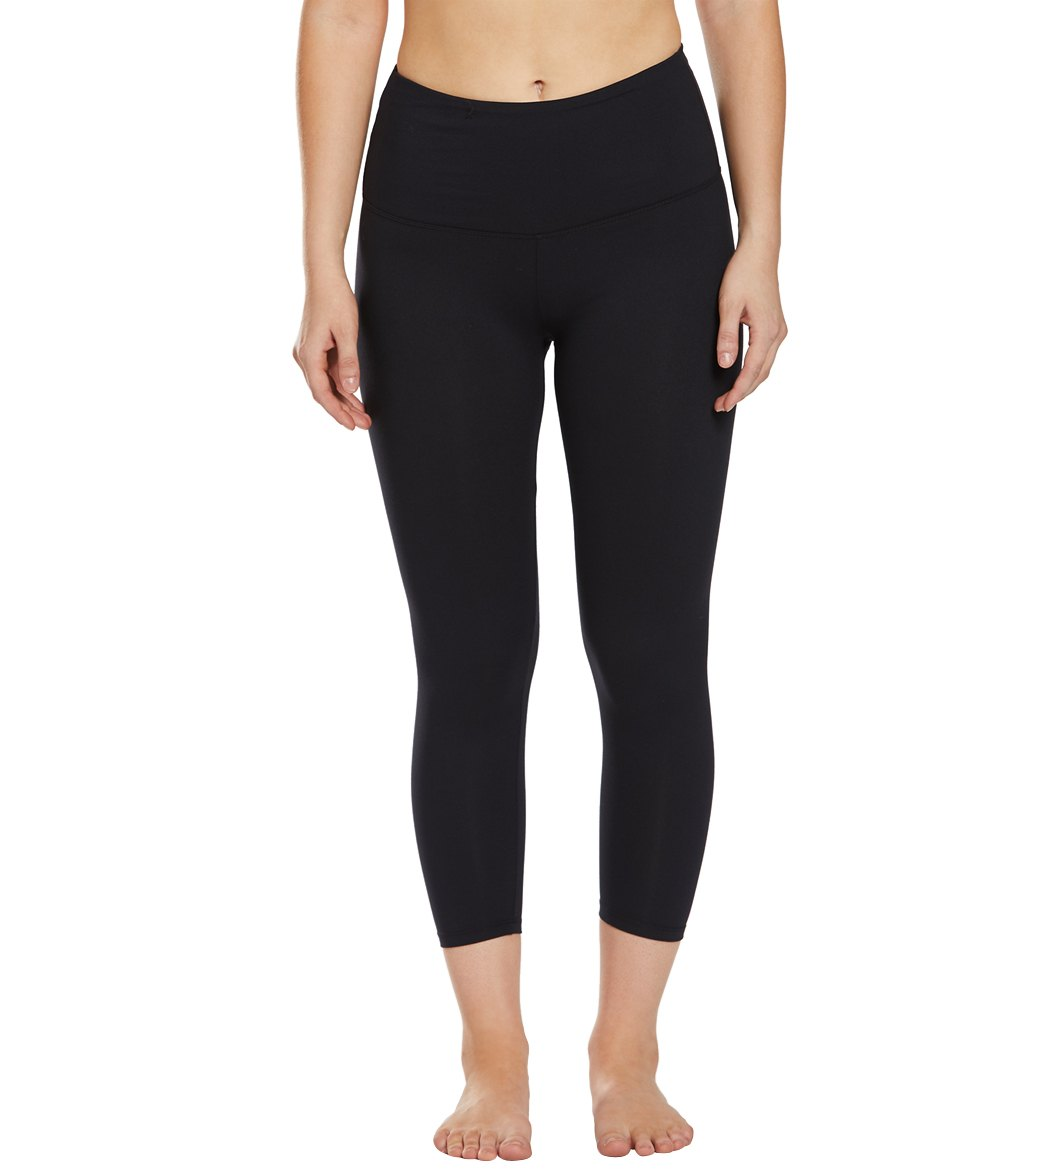 Balance Collection Ultra High Waisted Yoga Capri Pants - Black Cotton